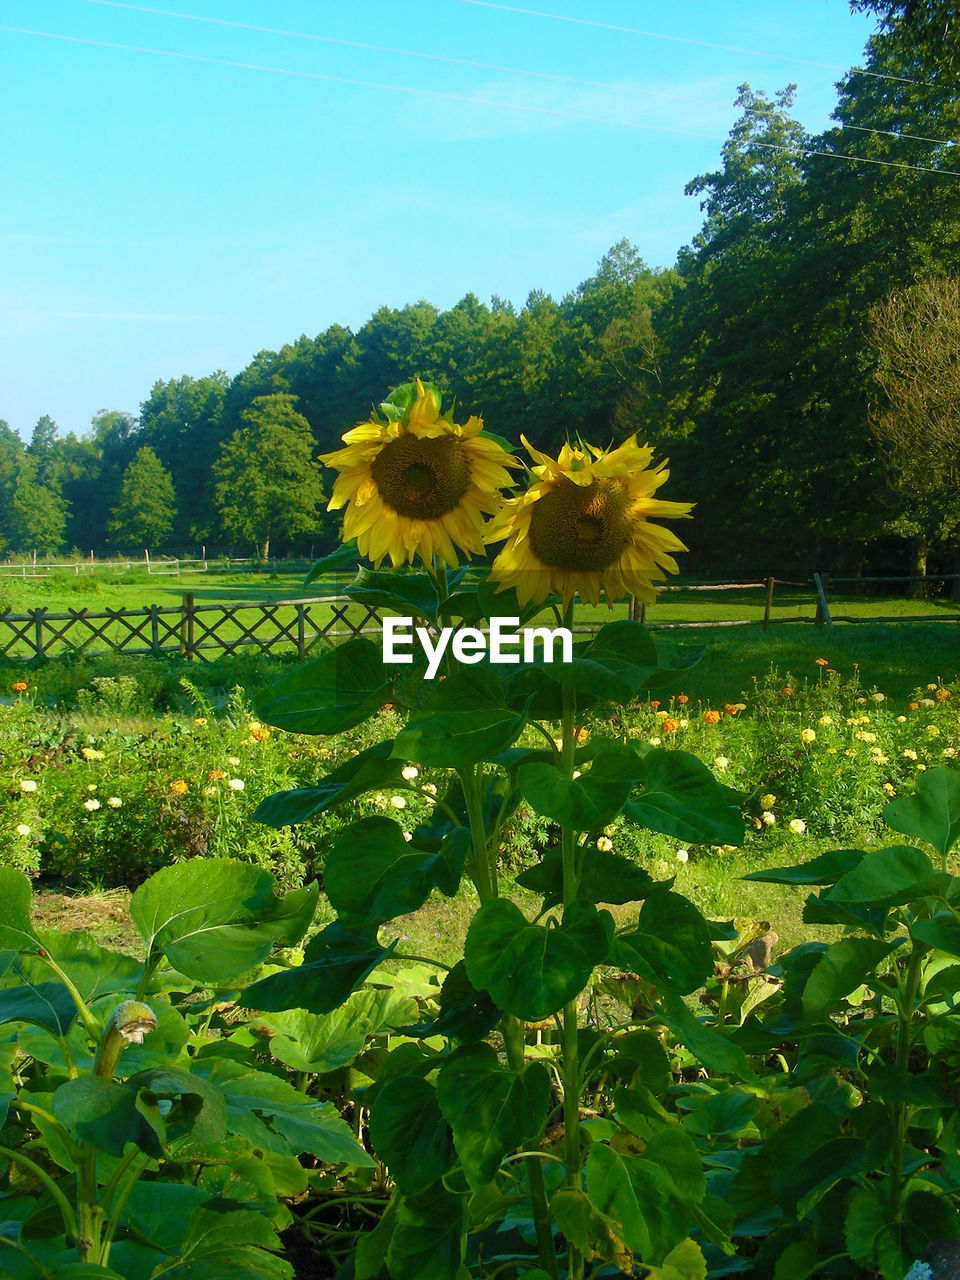 flower, growth, freshness, nature, fragility, beauty in nature, petal, yellow, plant, flower head, blooming, day, no people, outdoors, field, green color, sunflower, leaf, sky, tree, close-up, black-eyed susan